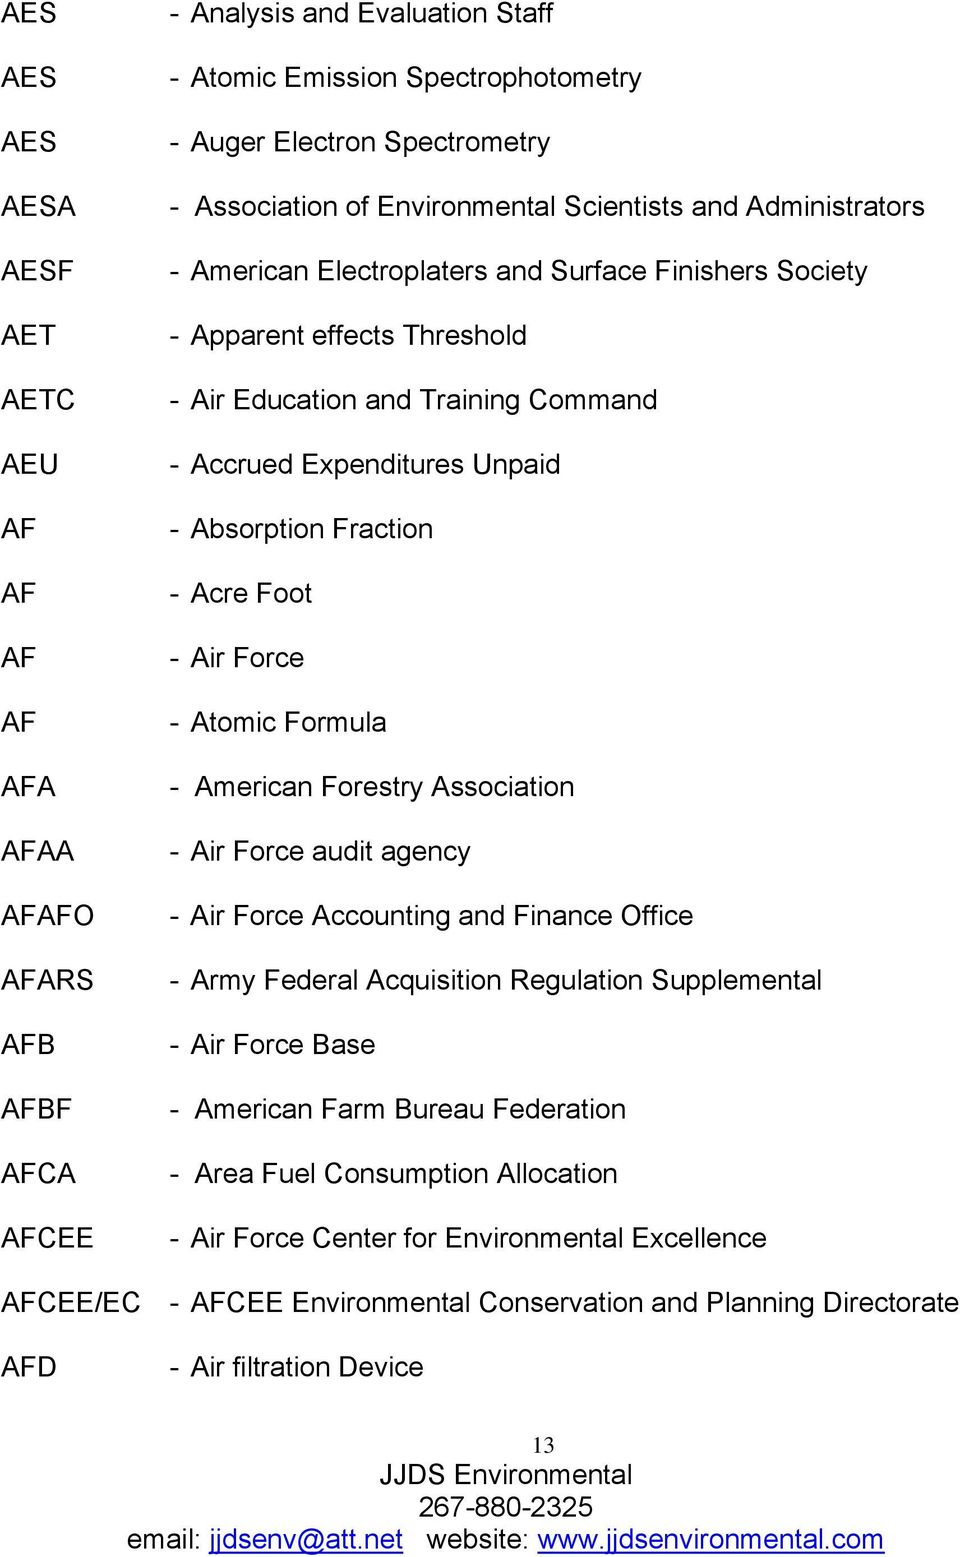 - Absorption Fraction - Acre Foot - Air Force - Atomic Formula - American Forestry Association - Air Force audit agency - Air Force Accounting and Finance Office - Army Federal Acquisition Regulation